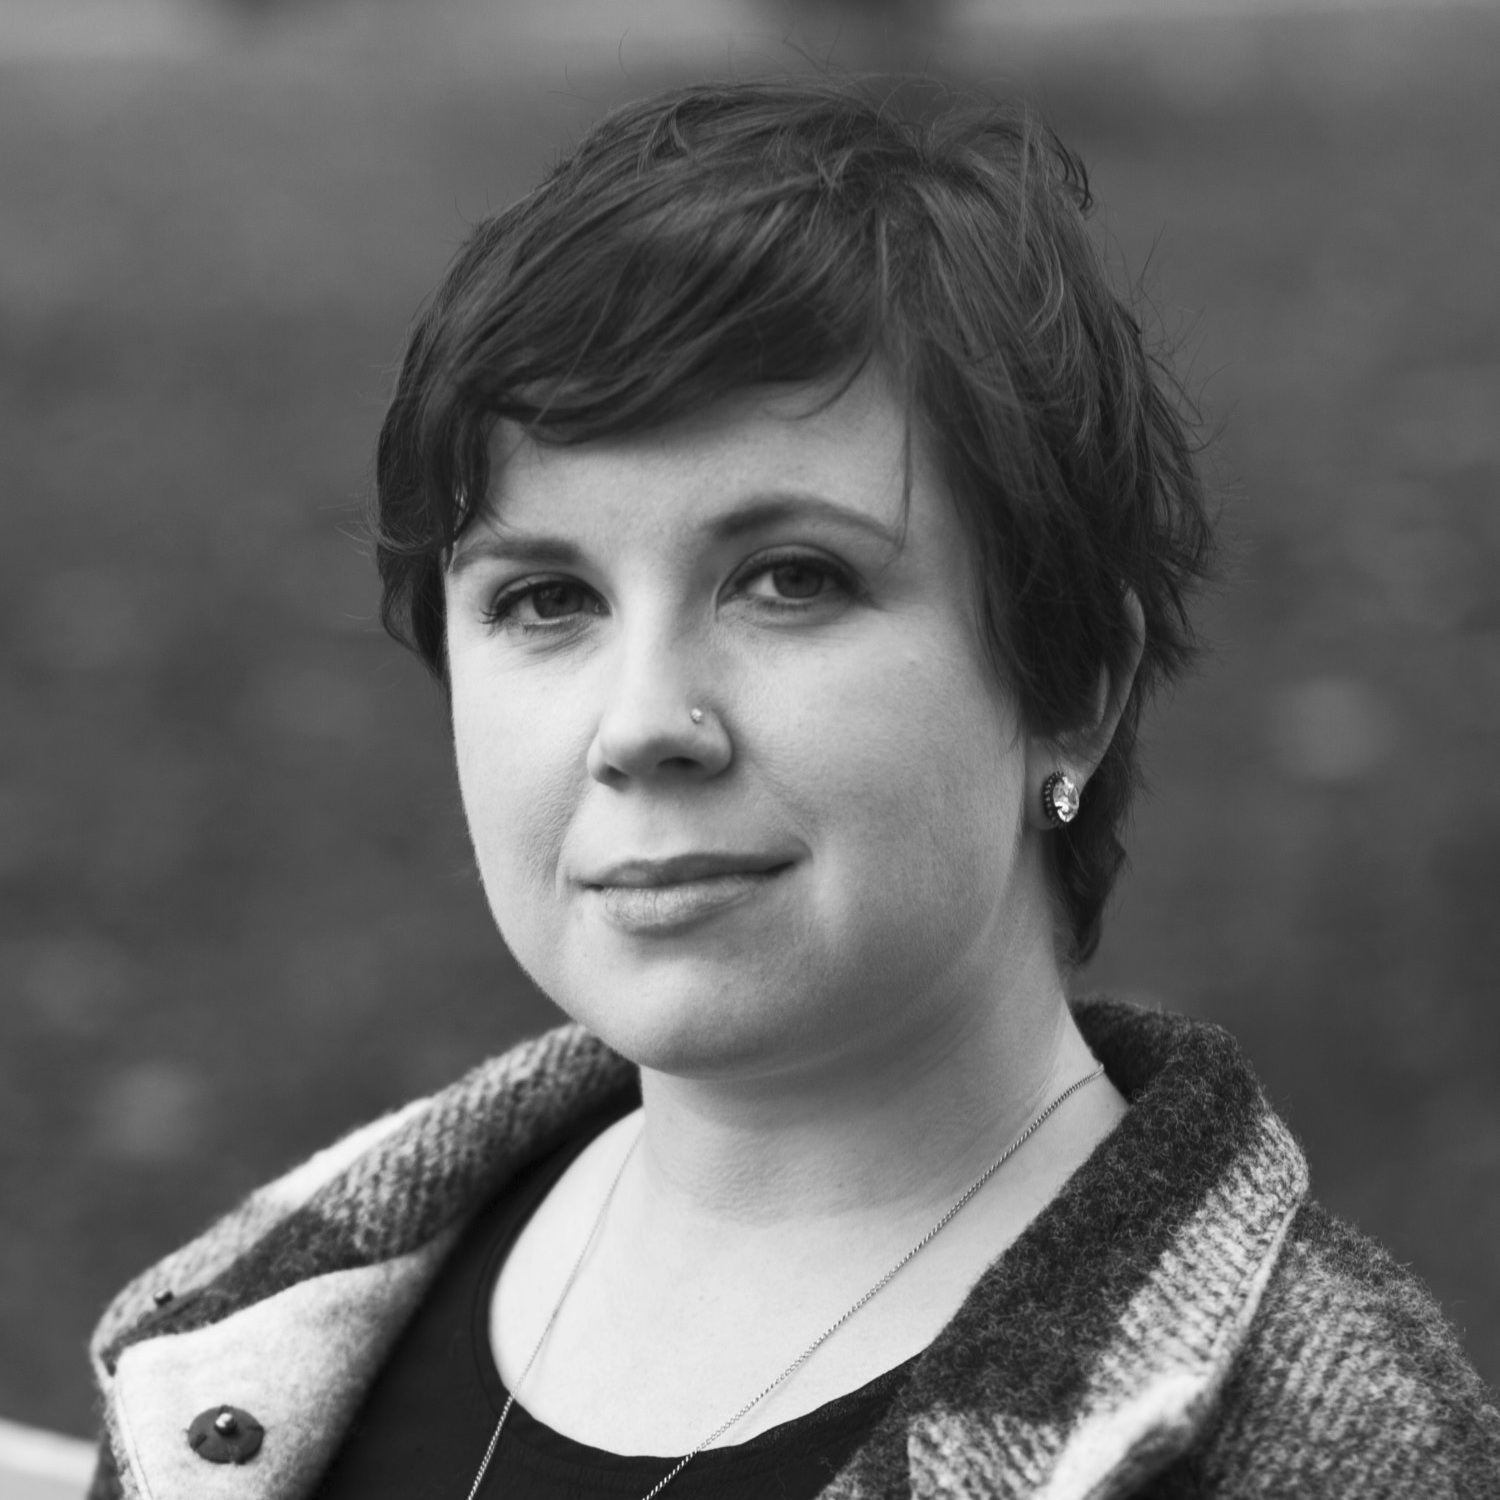 Catriona Wright is the author of the poetry collection     Table Manners       (Véhicule Press, 2017) and the short story collection     Difficult People     (Nightwood Editions, 2018). She is the poetry editor for     The Puritan       and a co-founder of    Desert Pets Press   .